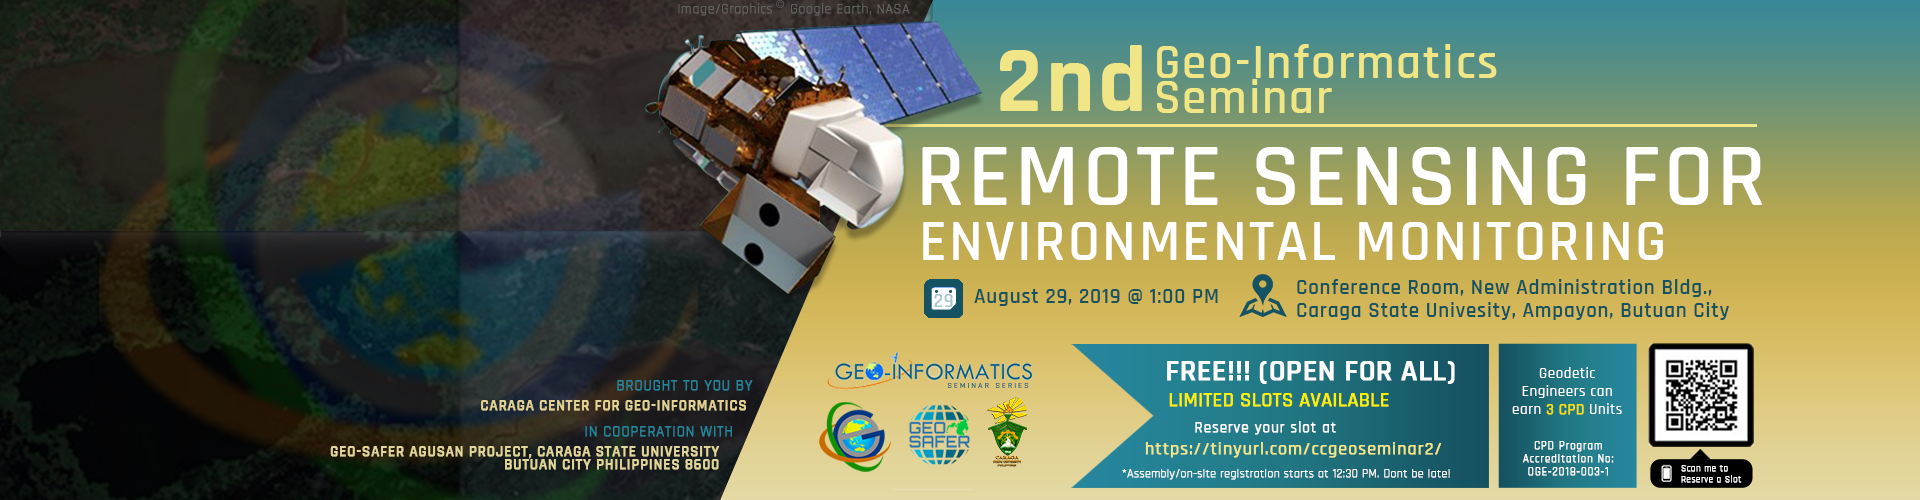 2nd Geo-Informatics Seminar on Remote Sensing for Environmental Monitoring